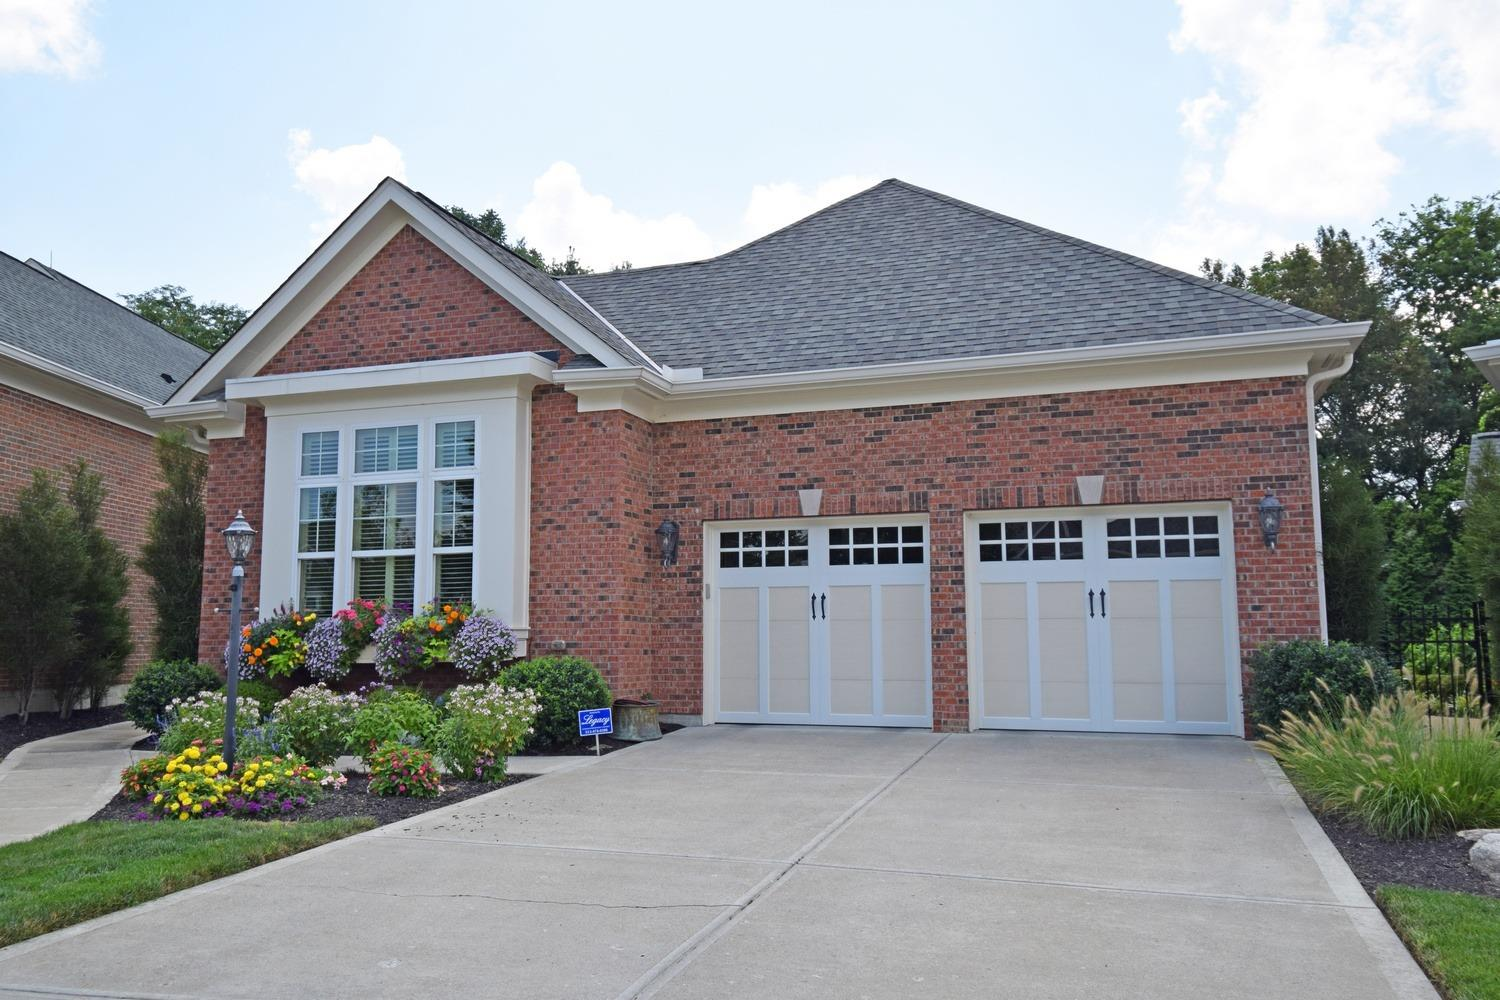 Welcoming front exterior features oversized two car garage and blooming window boxes.